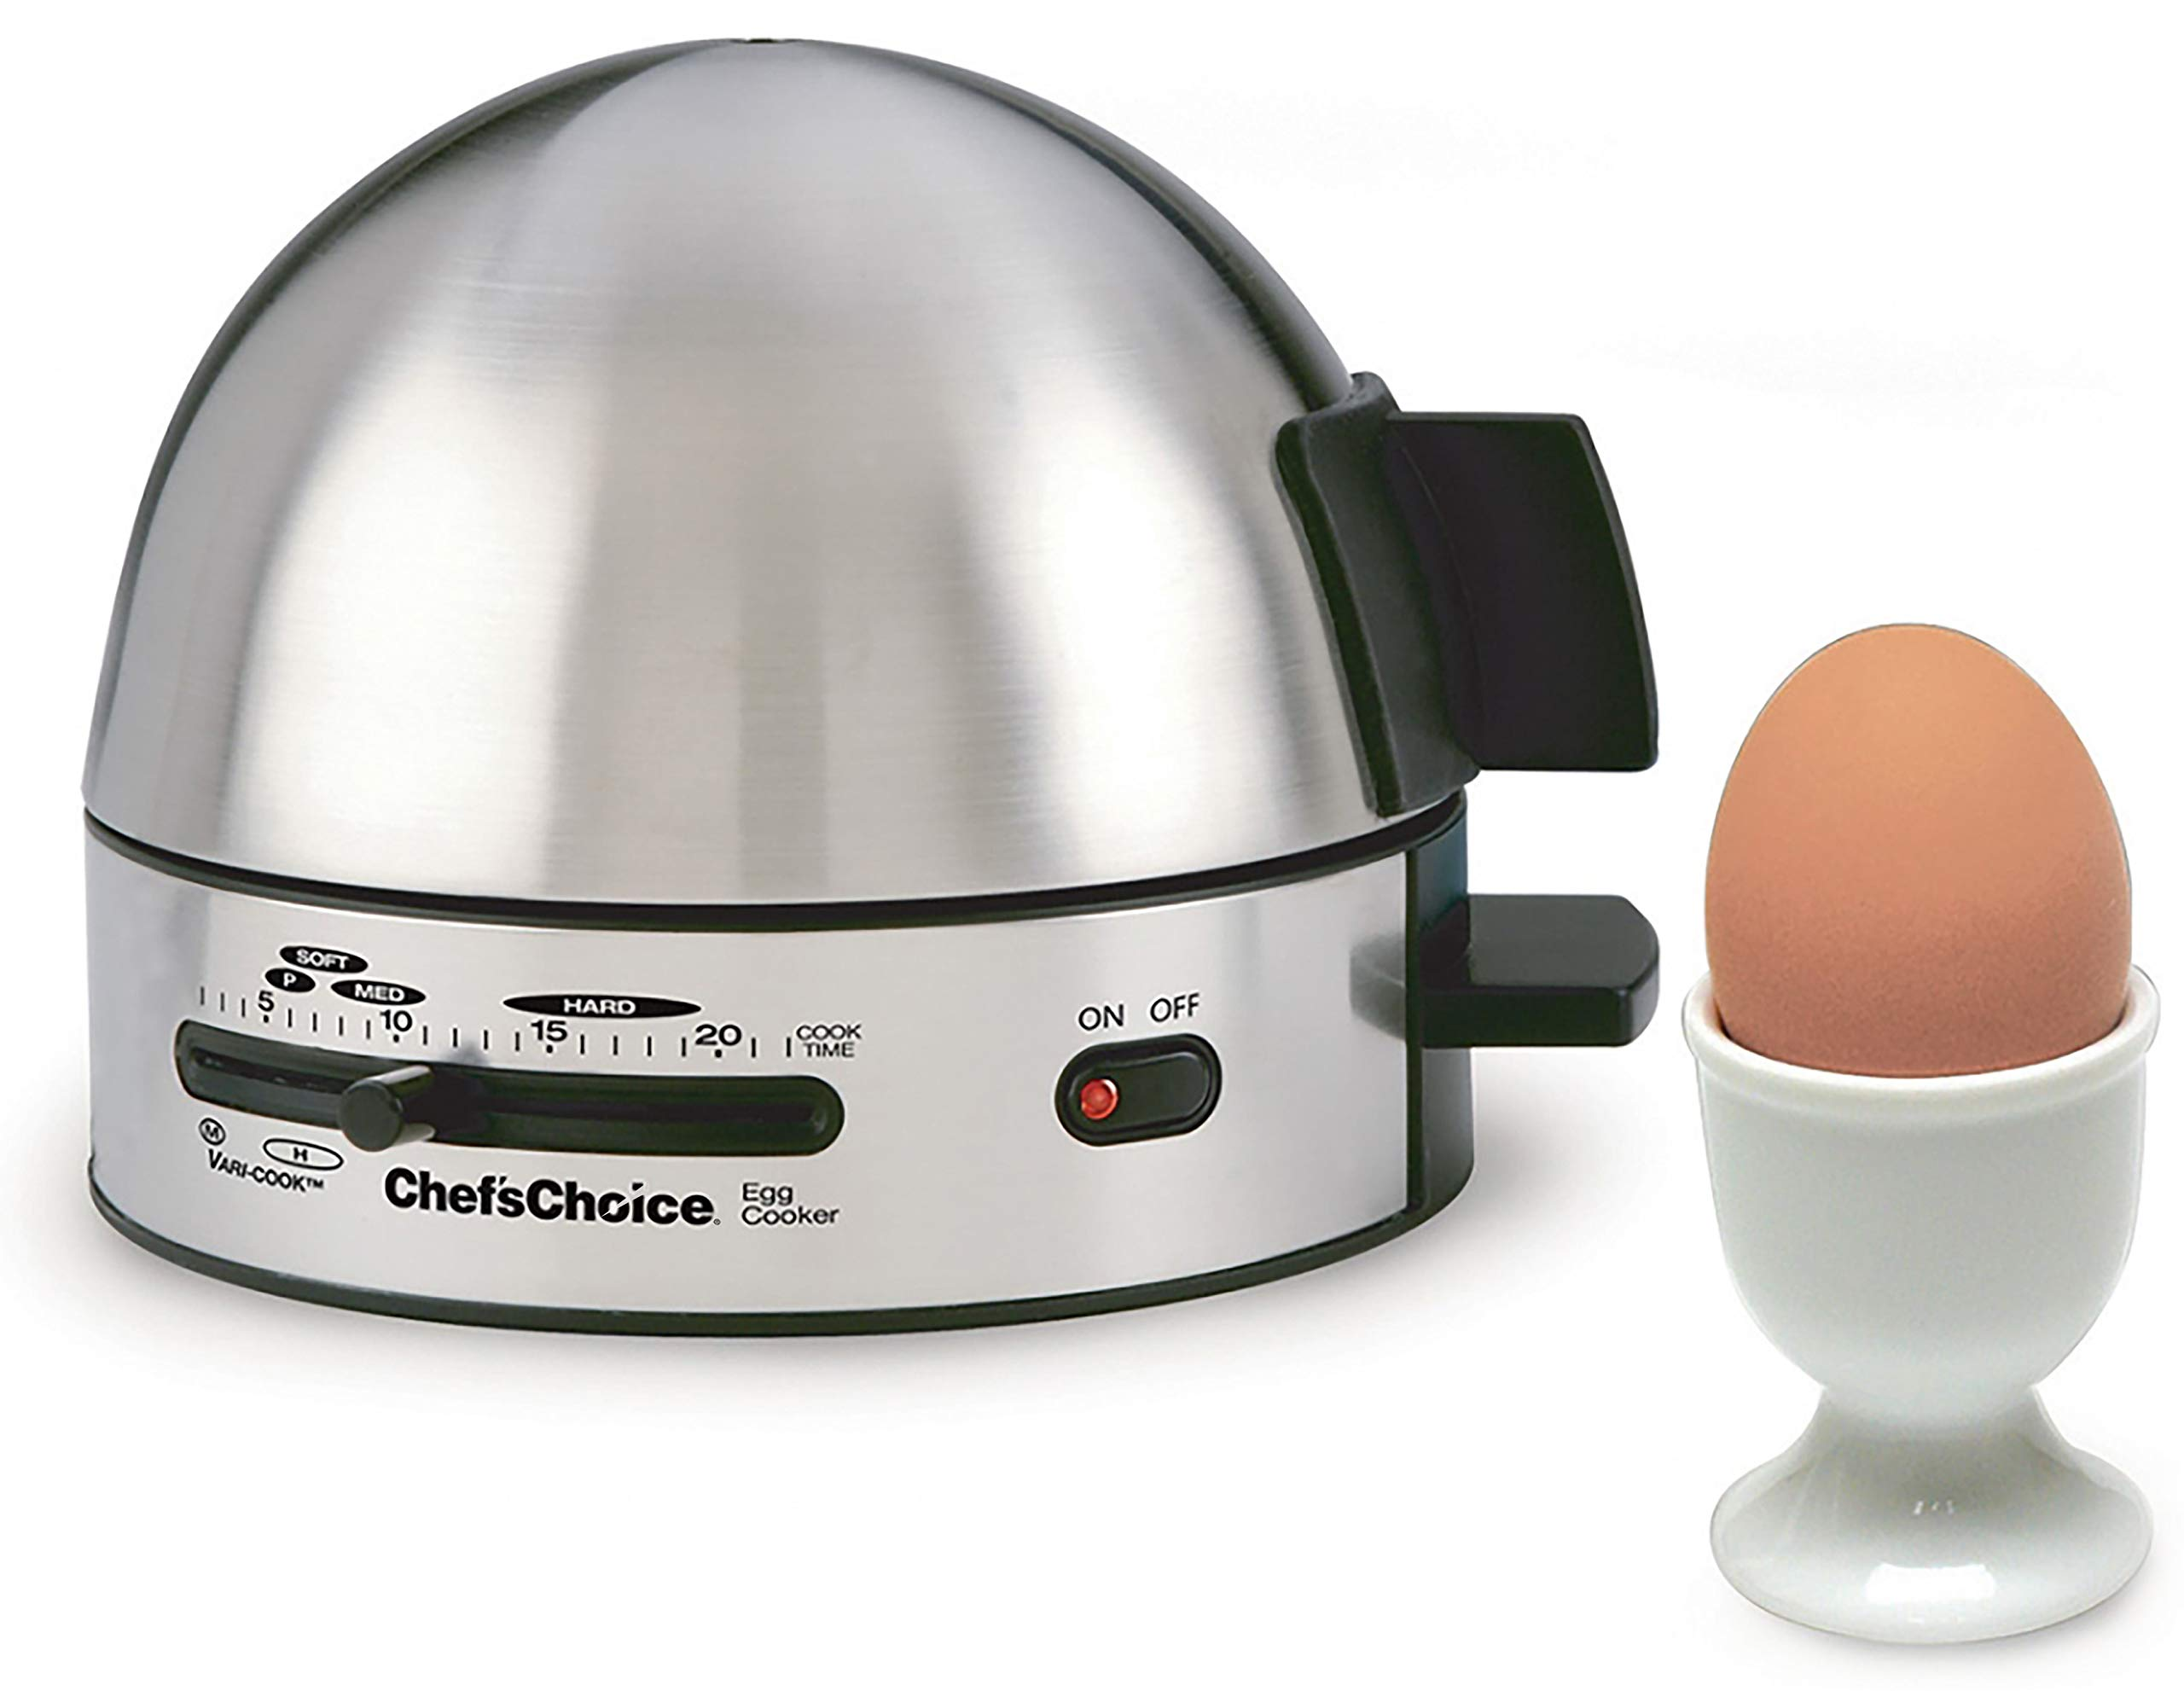 Chef'sChoice 810 Gourmet Egg Cooker with 7 Egg Capacity Makes Soft Medium Hard Boiled and Poached Eggs Features Electronic Timer Audible Ready Signal Nonstick Stainless Steel Design, 7-Eggs, Silver by Chef'sChoice